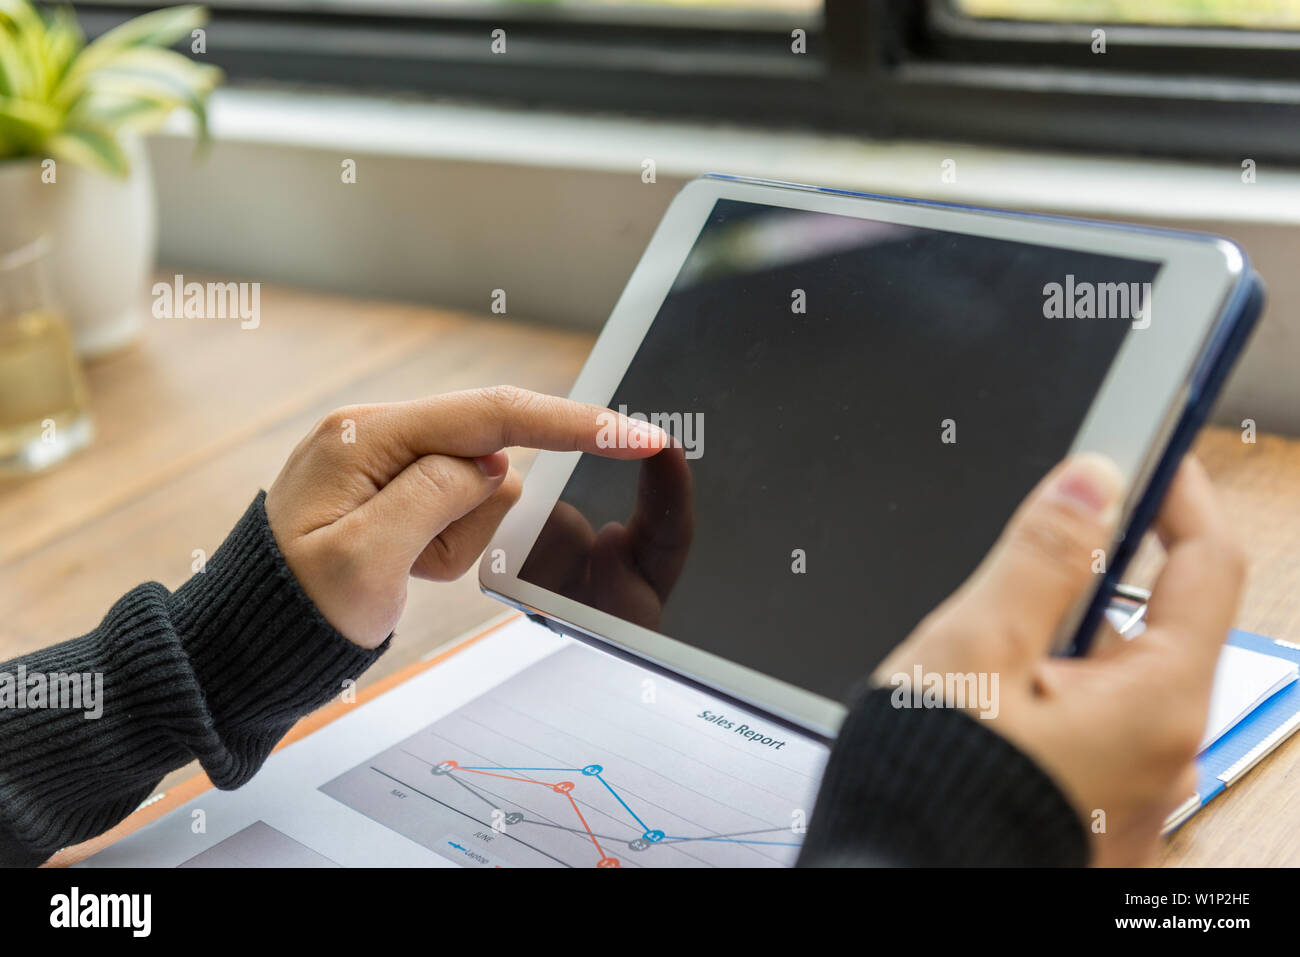 Close up of woman hands holding and tapping tablet screen - Stock Image